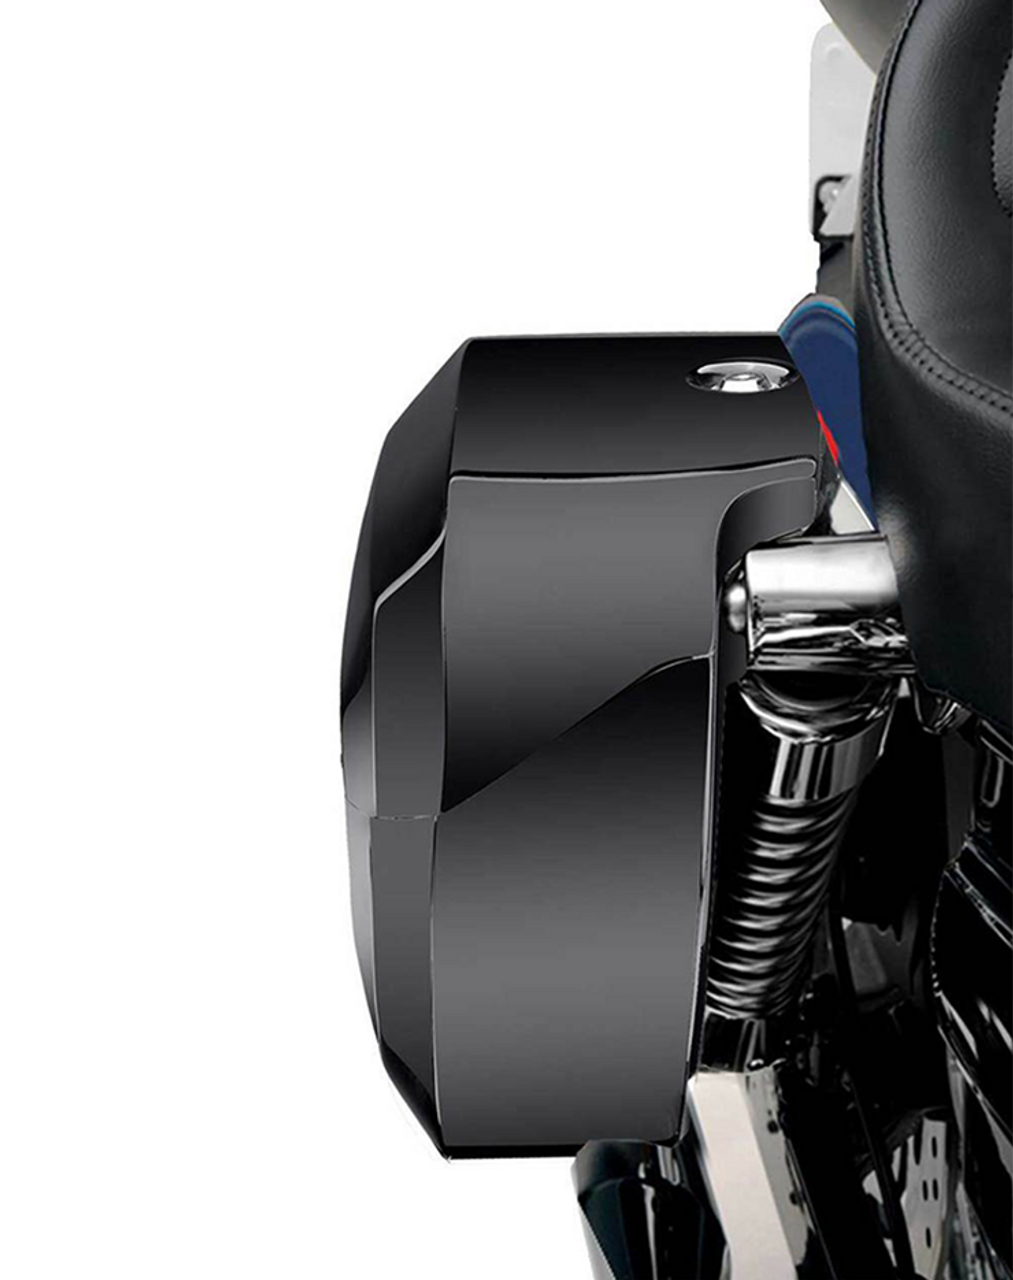 Viking Lamellar Extra Large Shock Cutout Saddlebag For Harley Dyna Wide Glide FXDWG Shock Cutout View